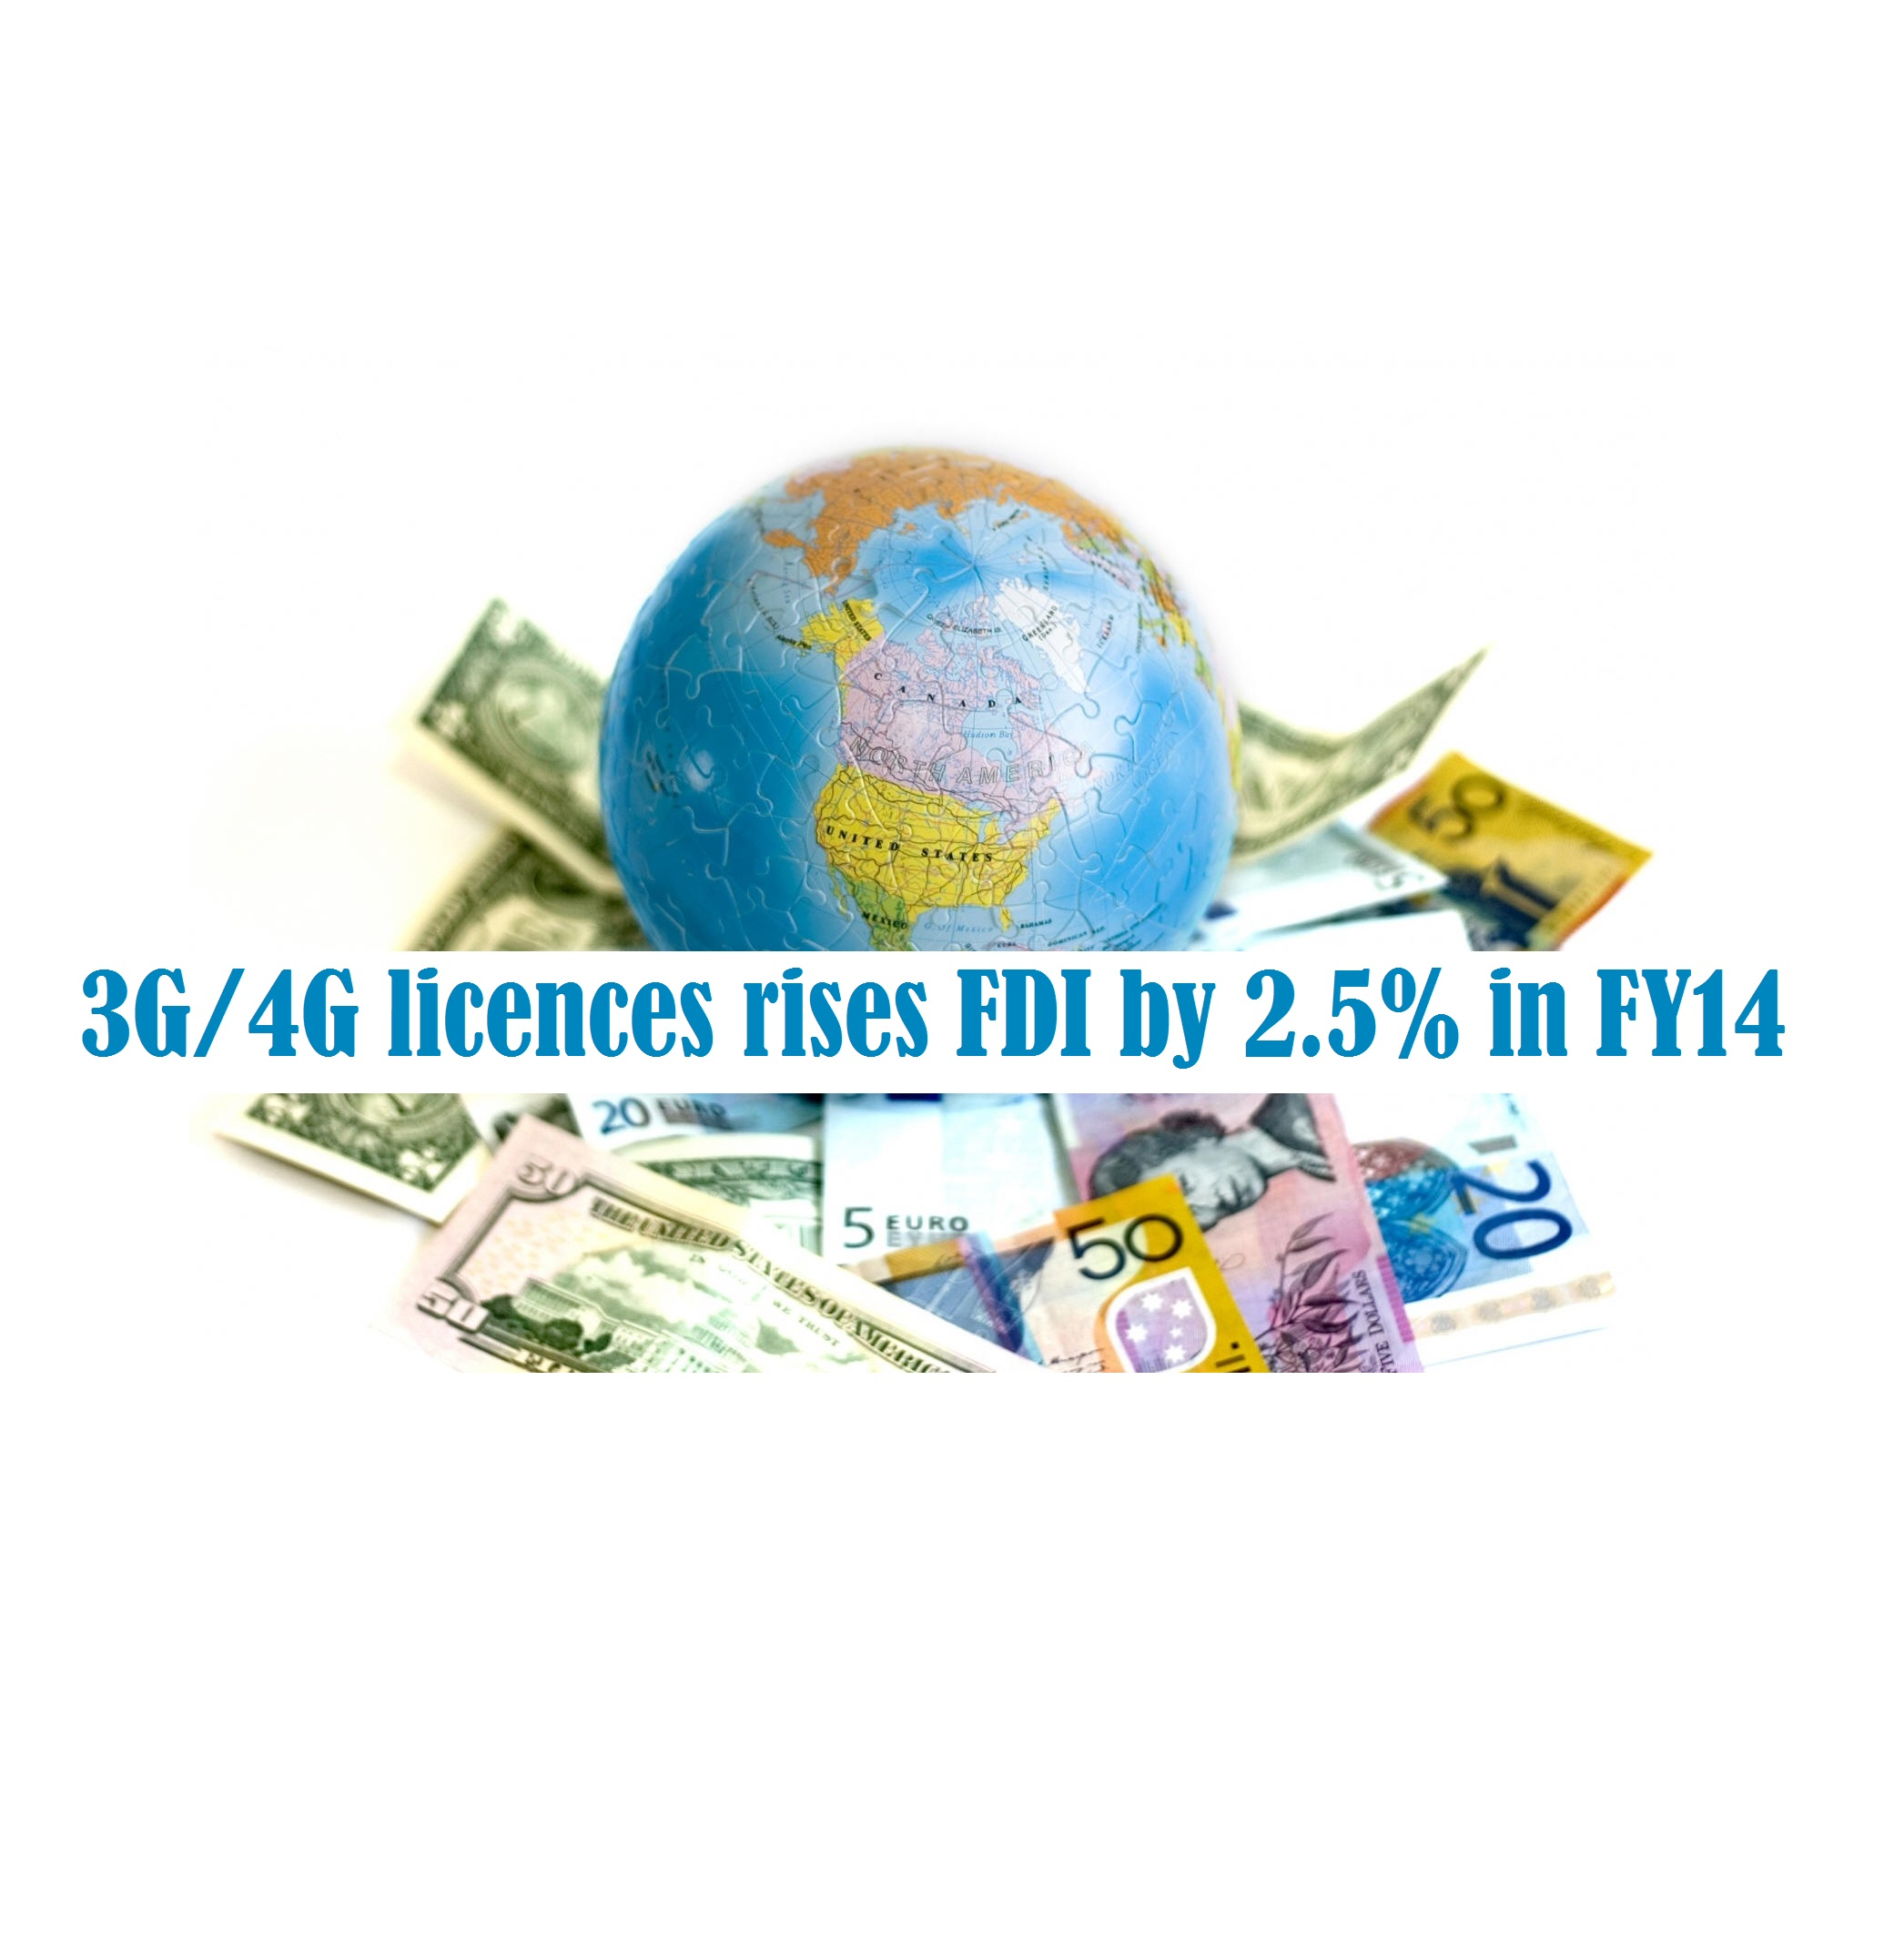 3G/4G licences rises FDI by 2.5% in FY14